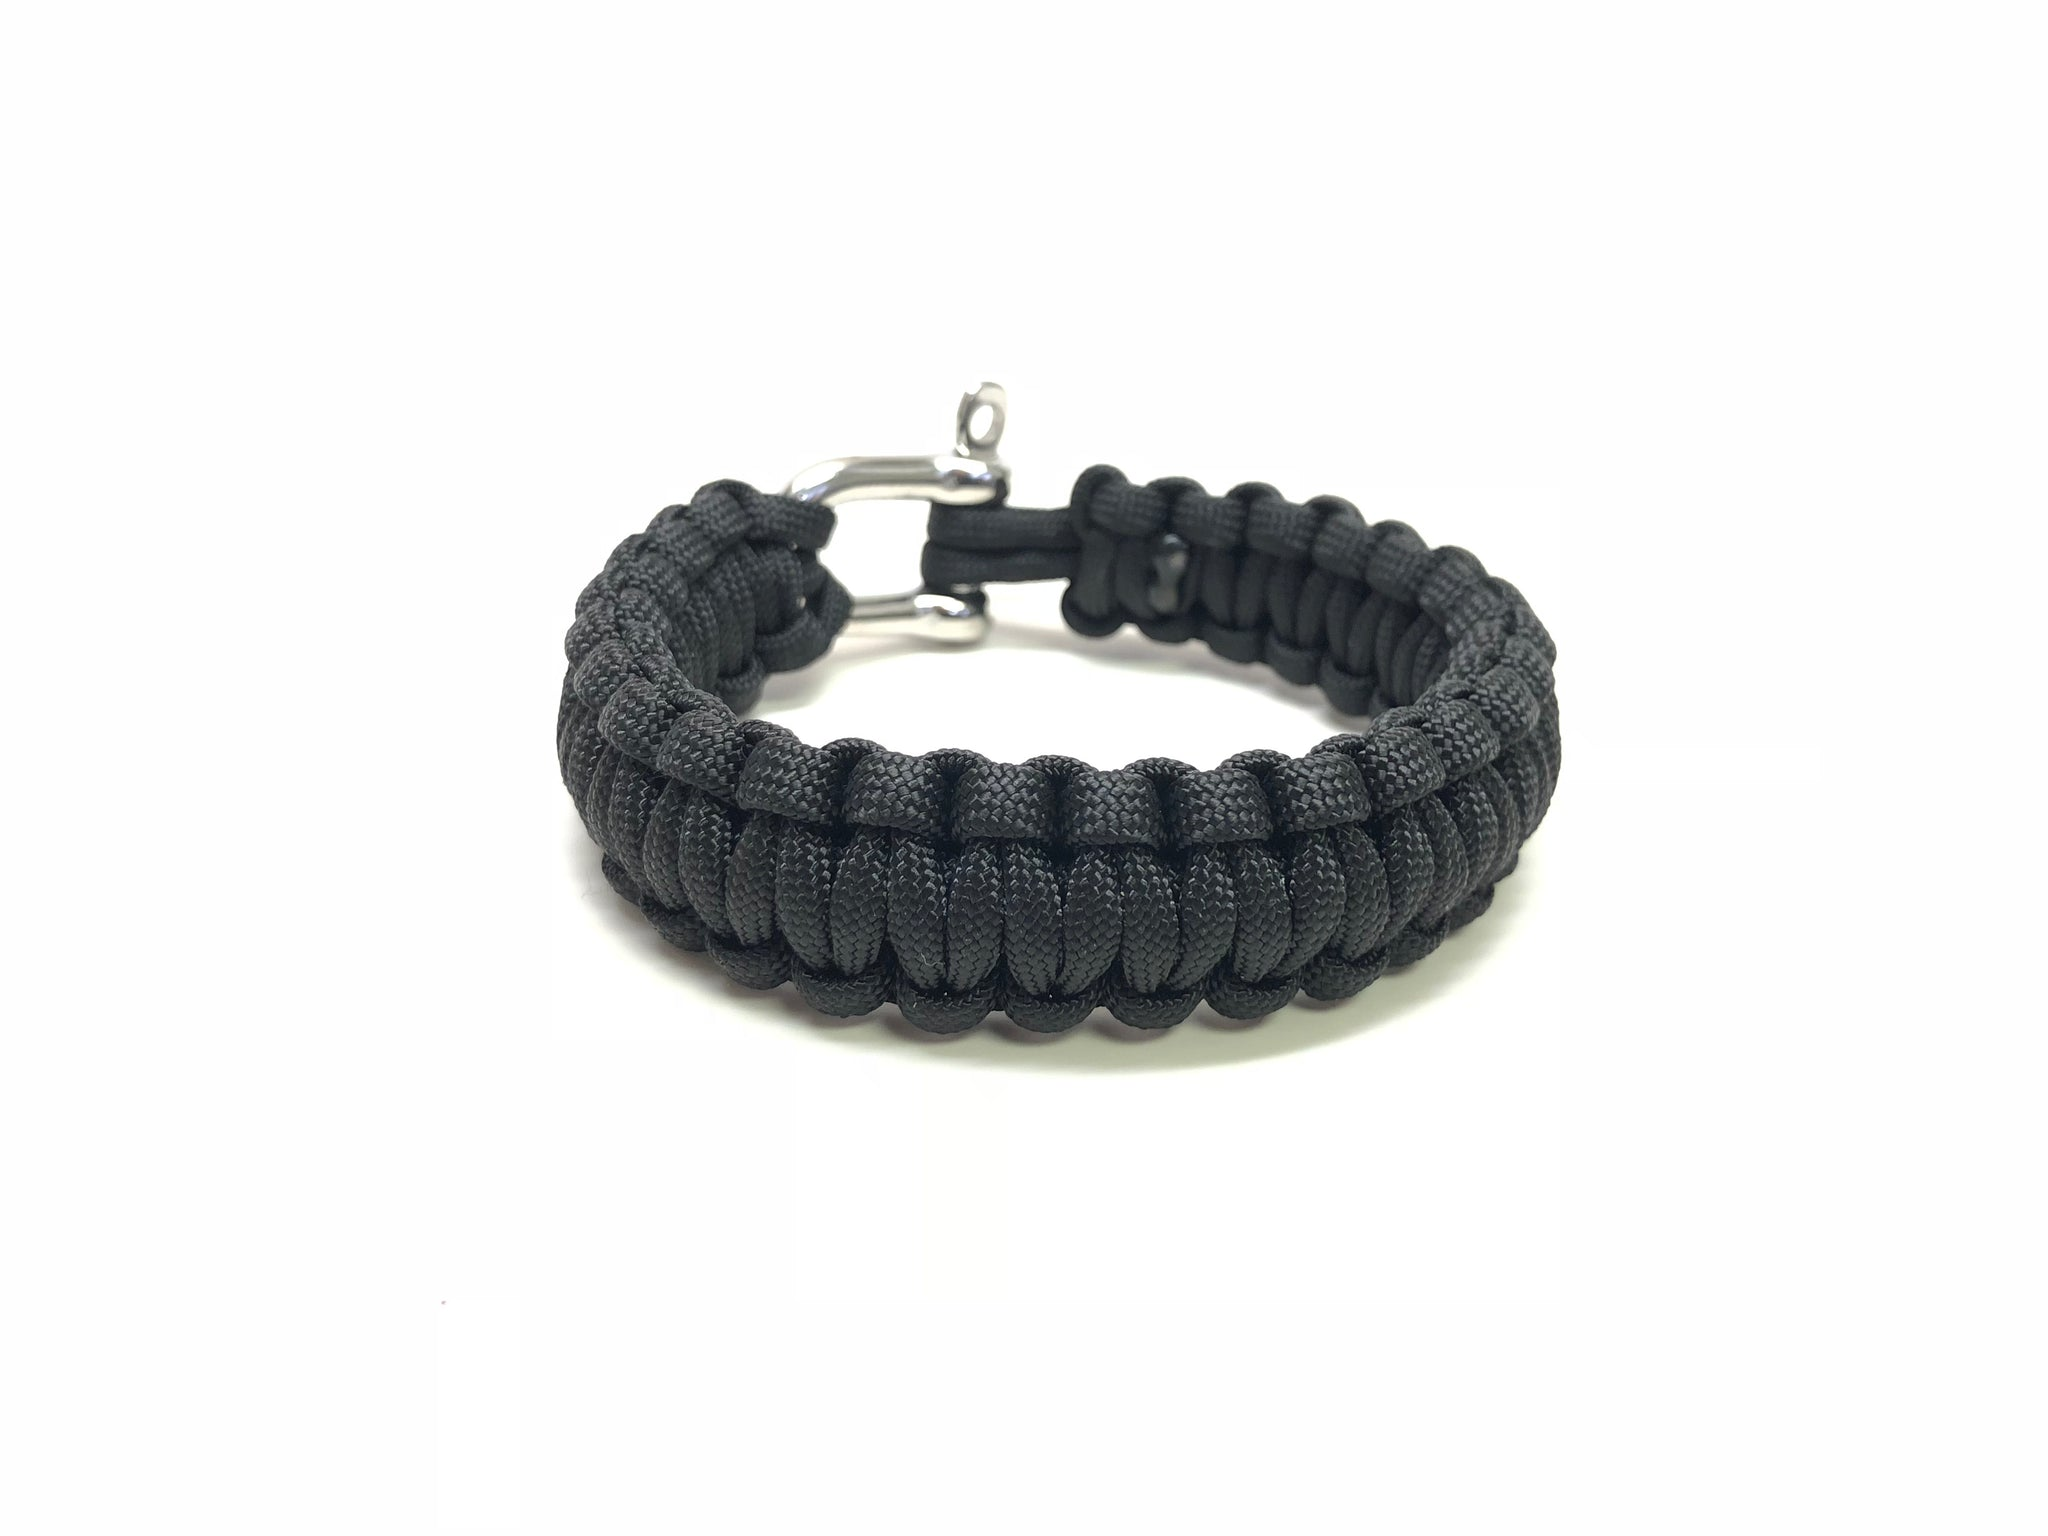 BLACK PARACORD BRACELET WITH STAINLESS STEEL SCREW PIN CLASP SIZE 6